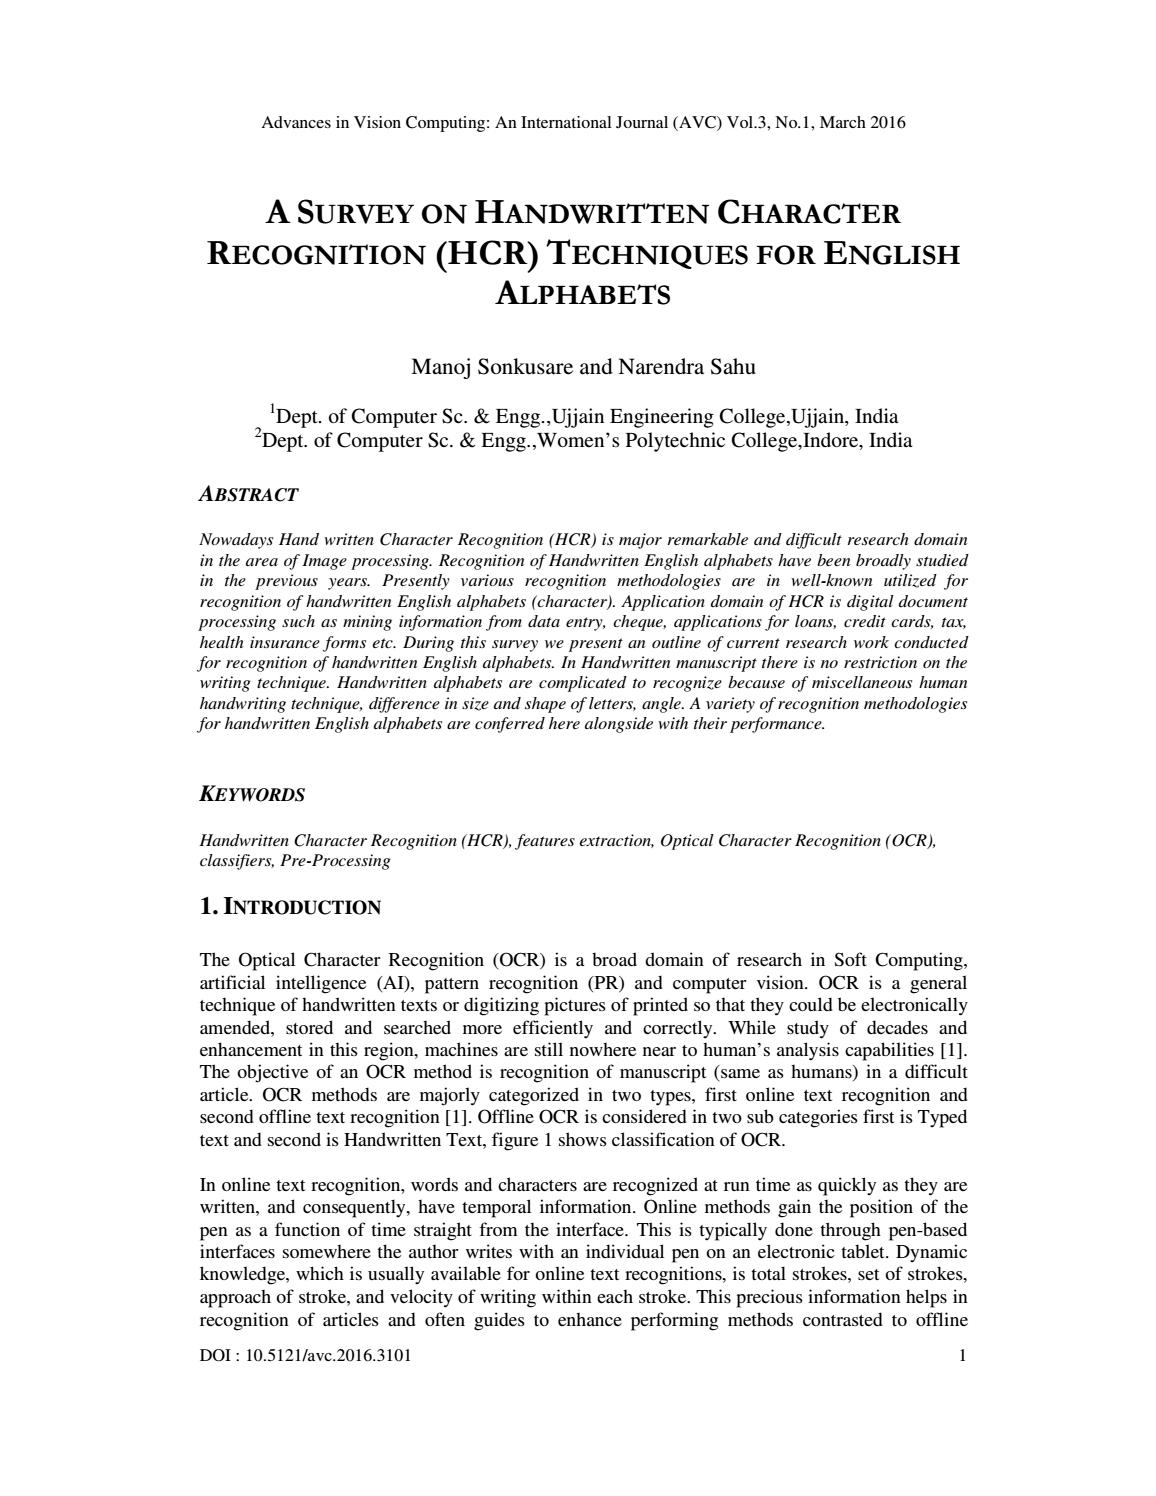 A Survey On Handwritten Character Recognition (Hcr